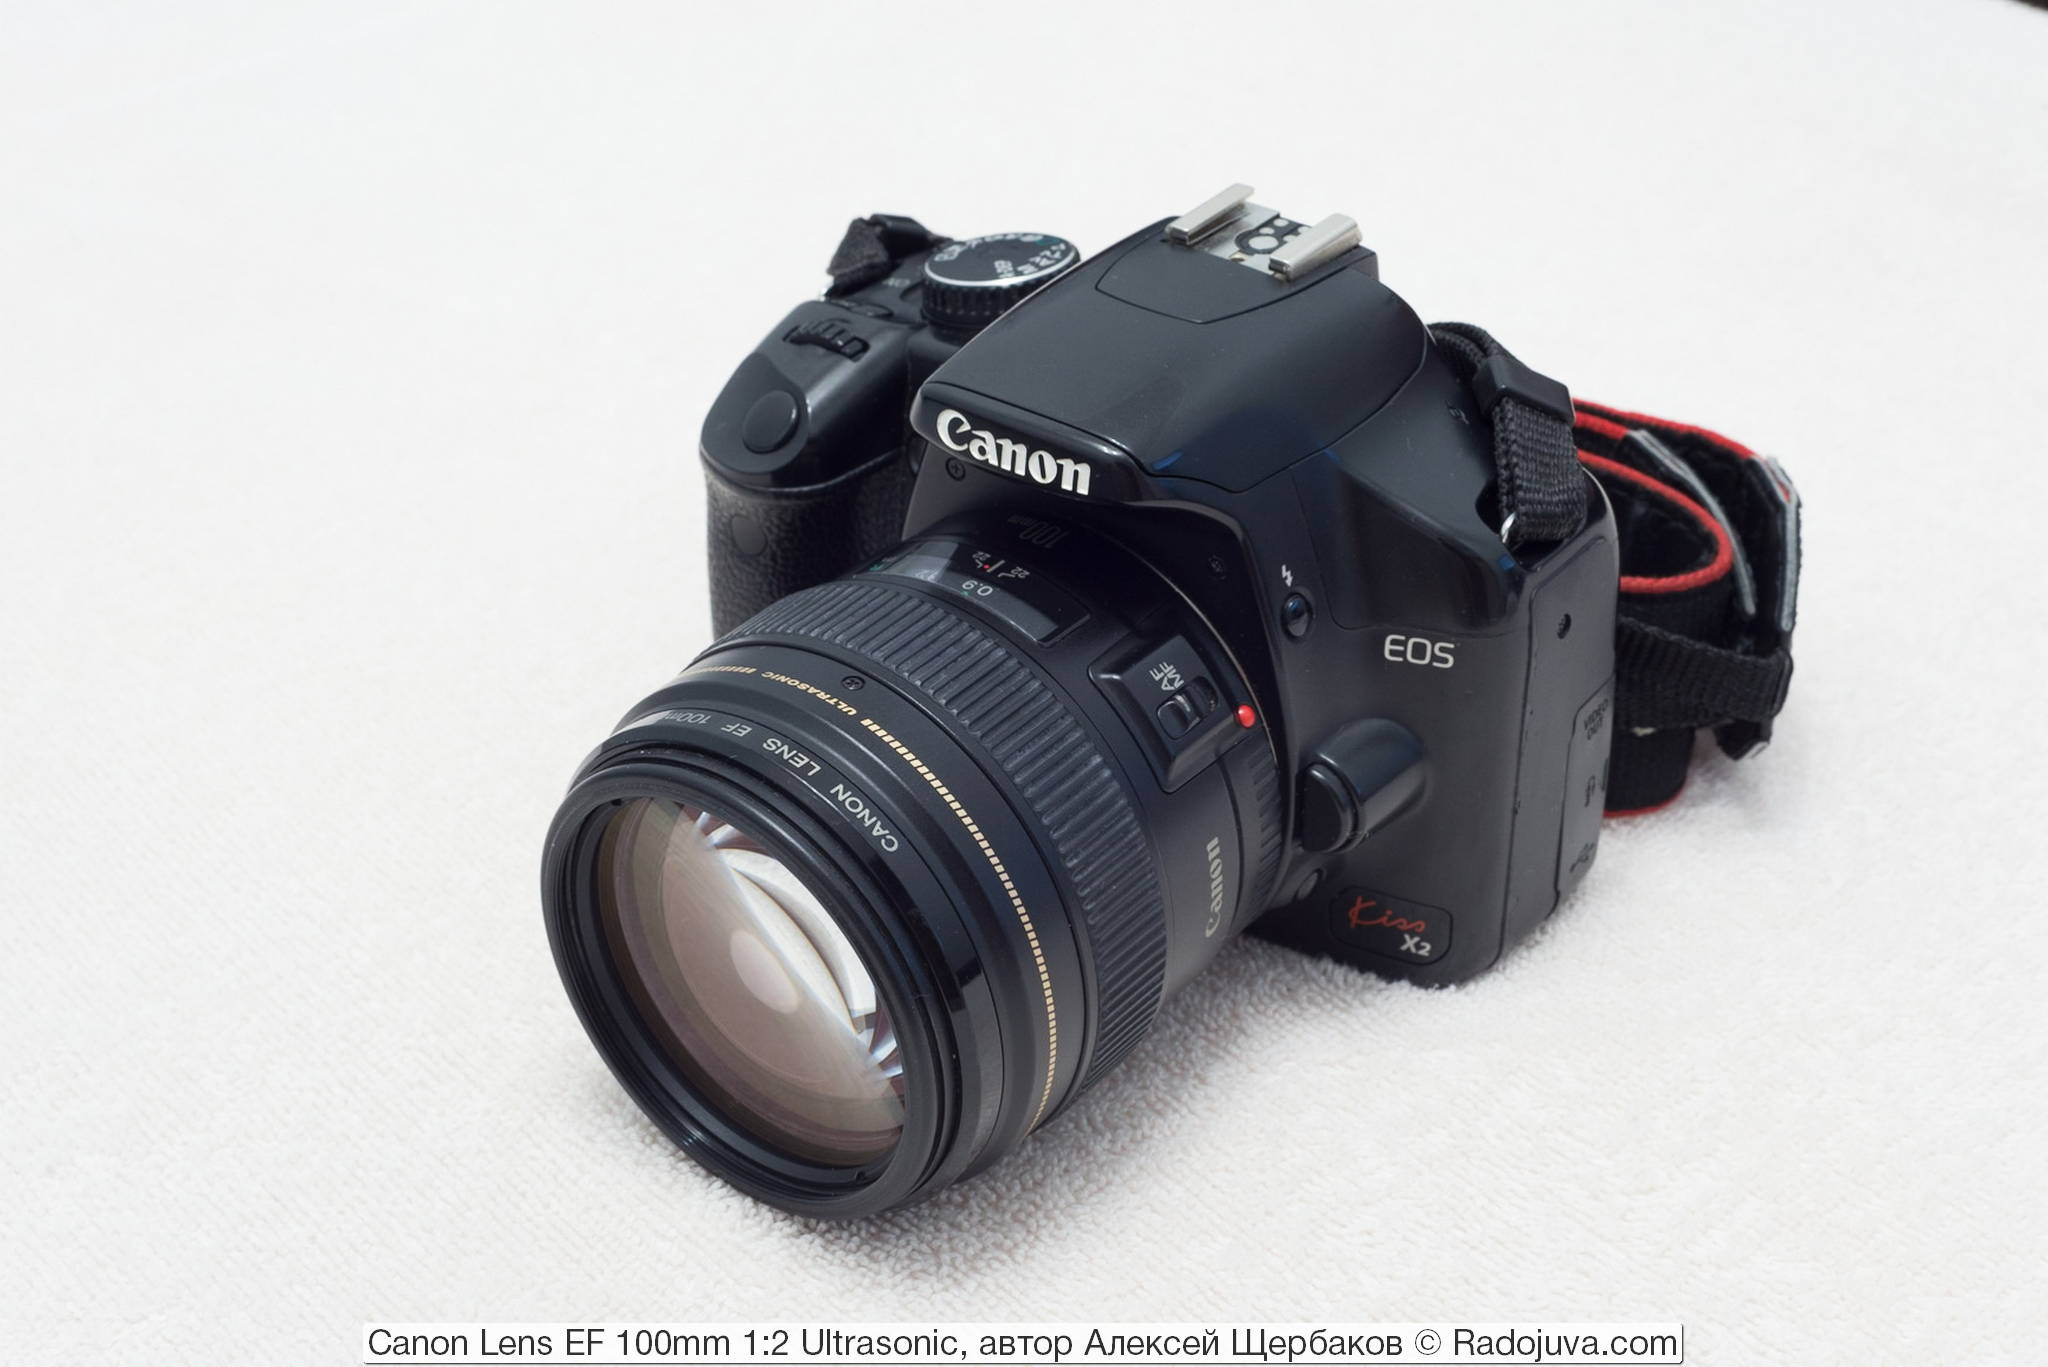 Canon Lens EF 100mm 1:2 Ultrasonic